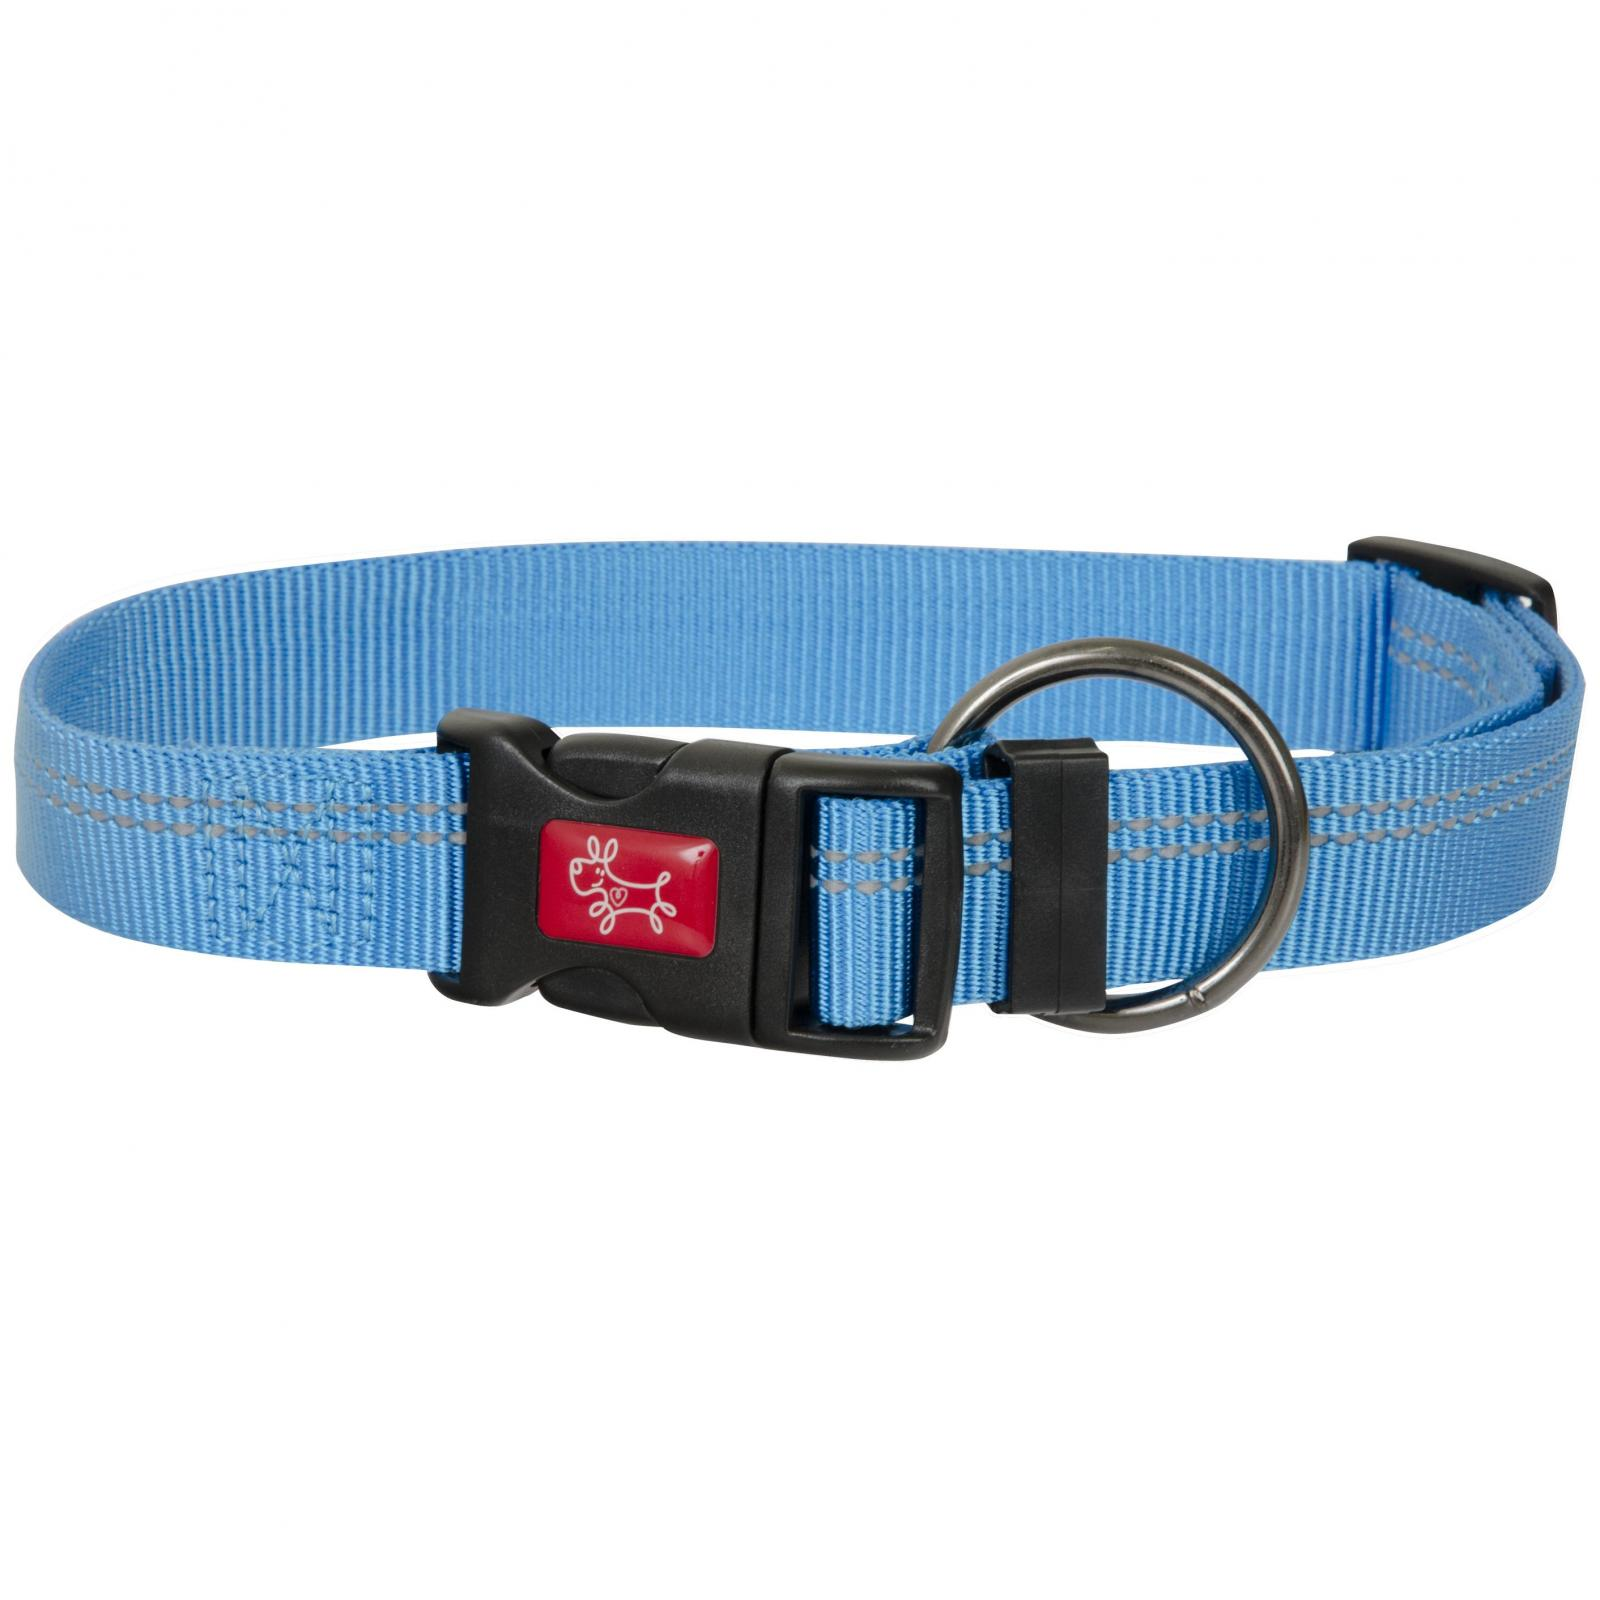 Yours Droolly Yours Droolly Adjustable Reflective Collar